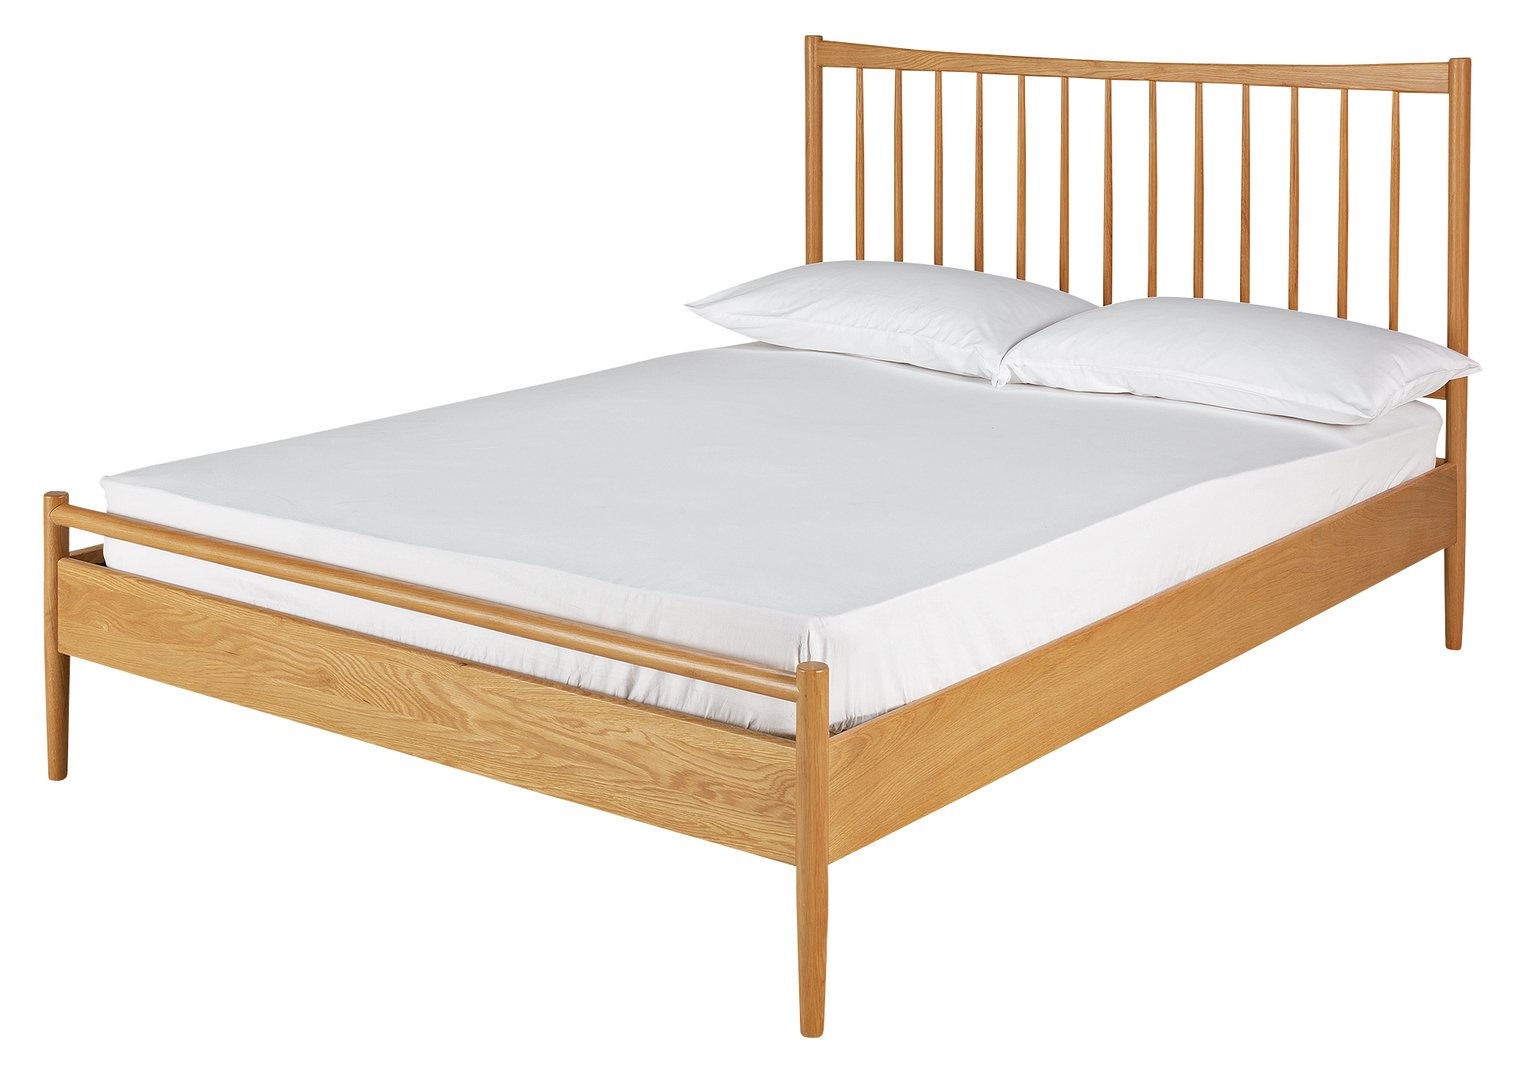 Argos Home Chiltern Spindle Kingsize Bed Frame - Oak